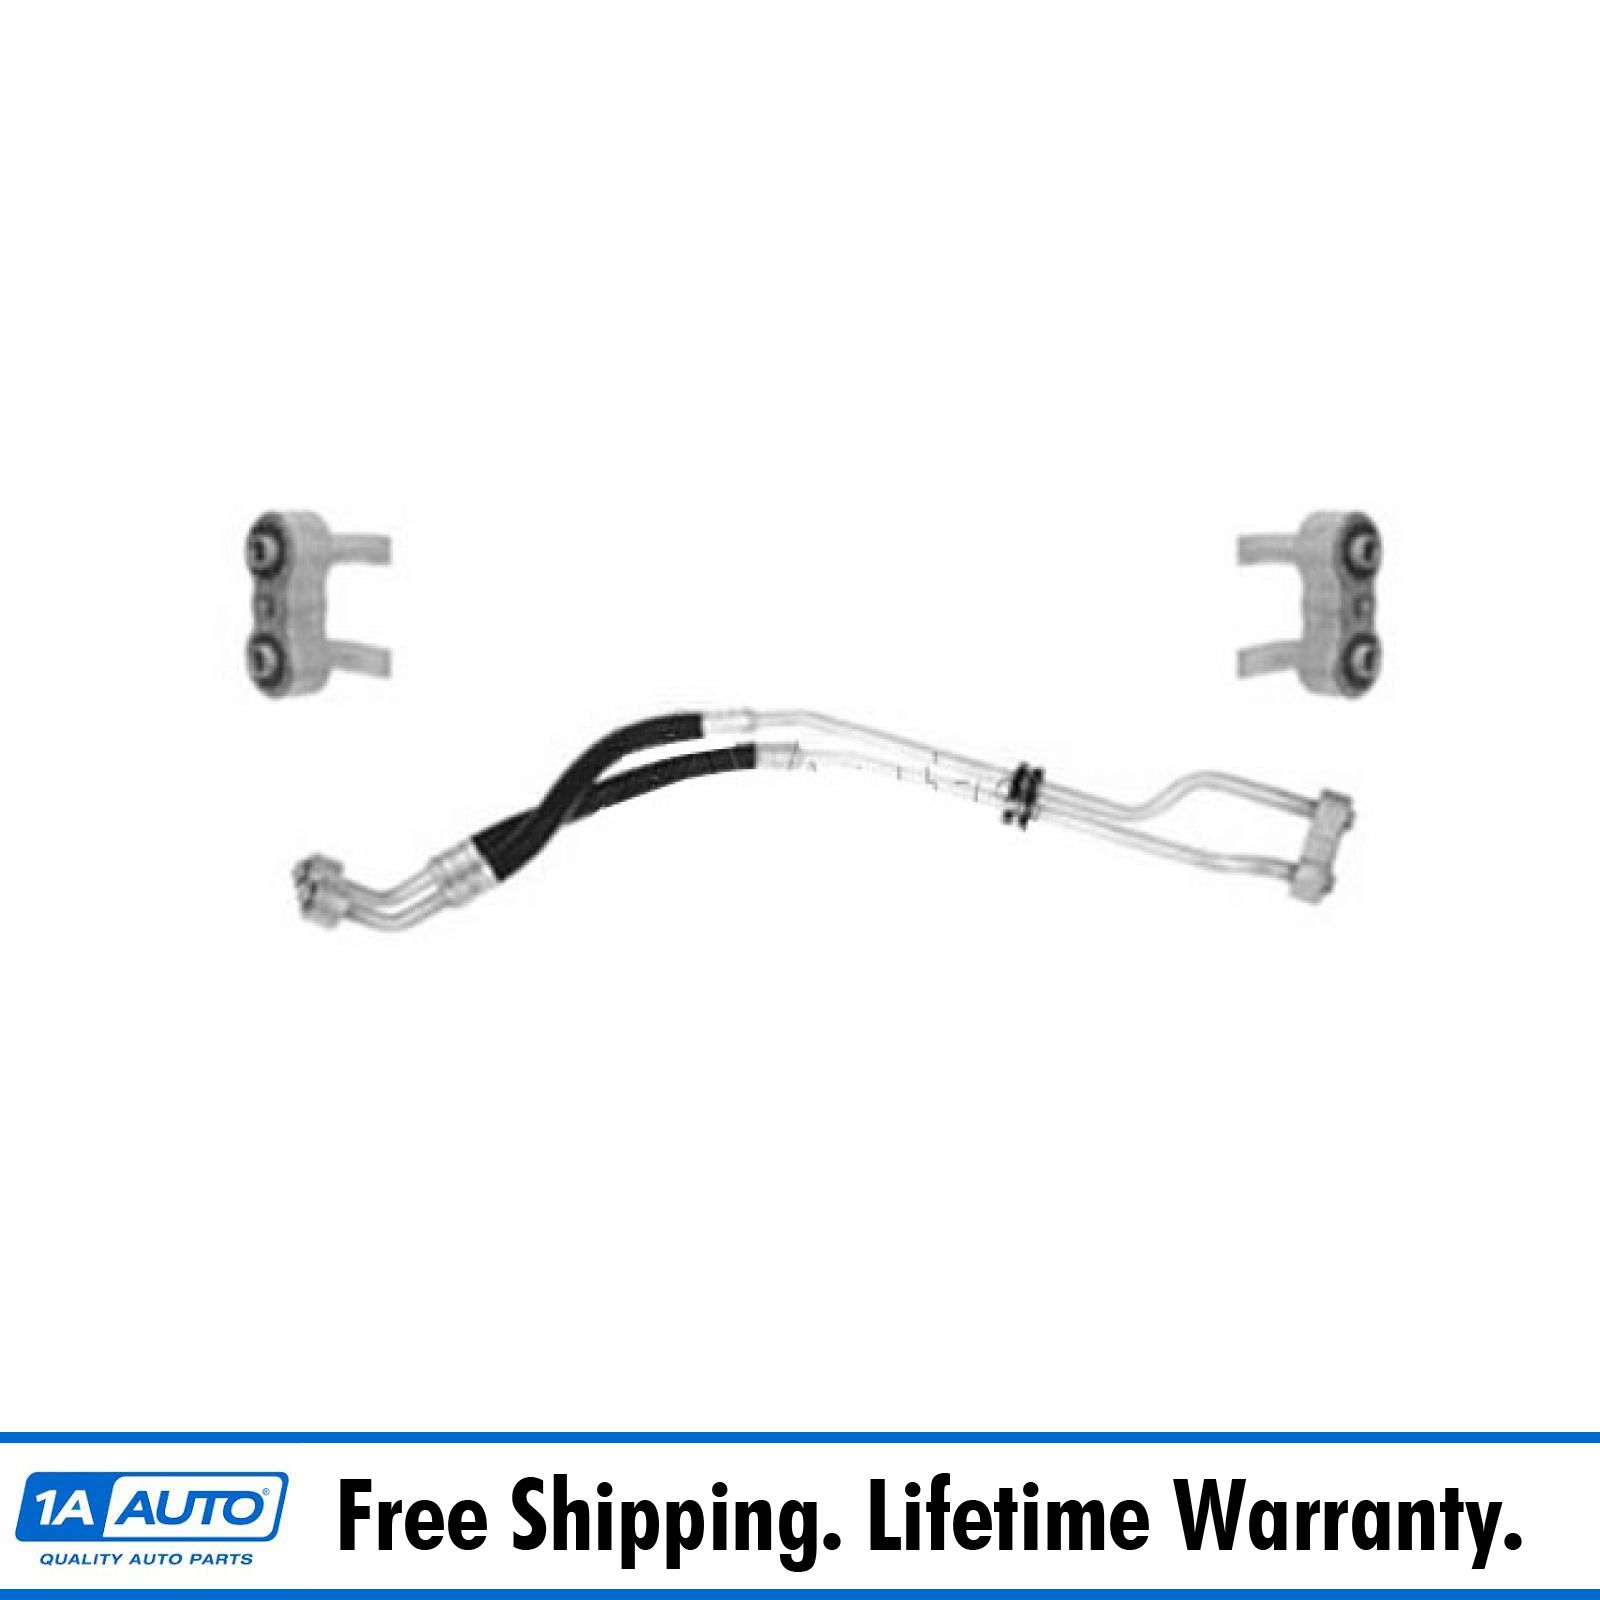 For 1996-2005 Chevrolet Astro Auto Trans Oil Cooler Hose Assembly Dorman 22361SS